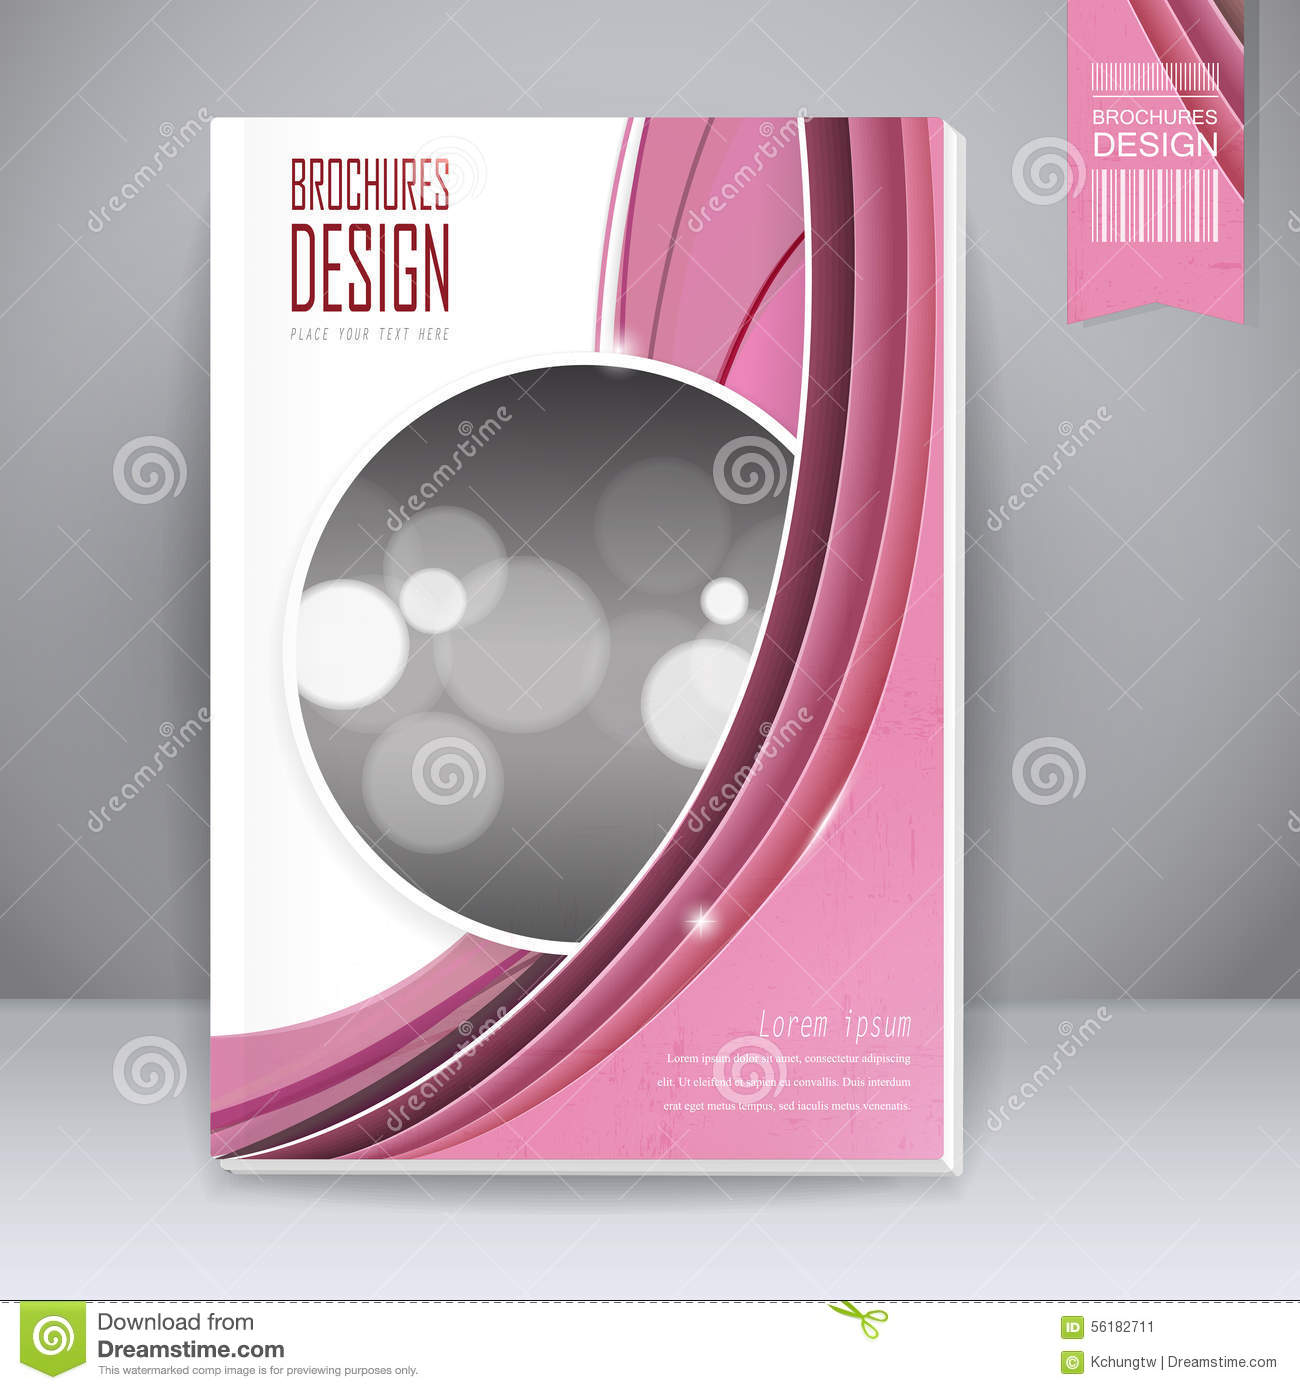 Book cover design template image collections for Design a book jacket template